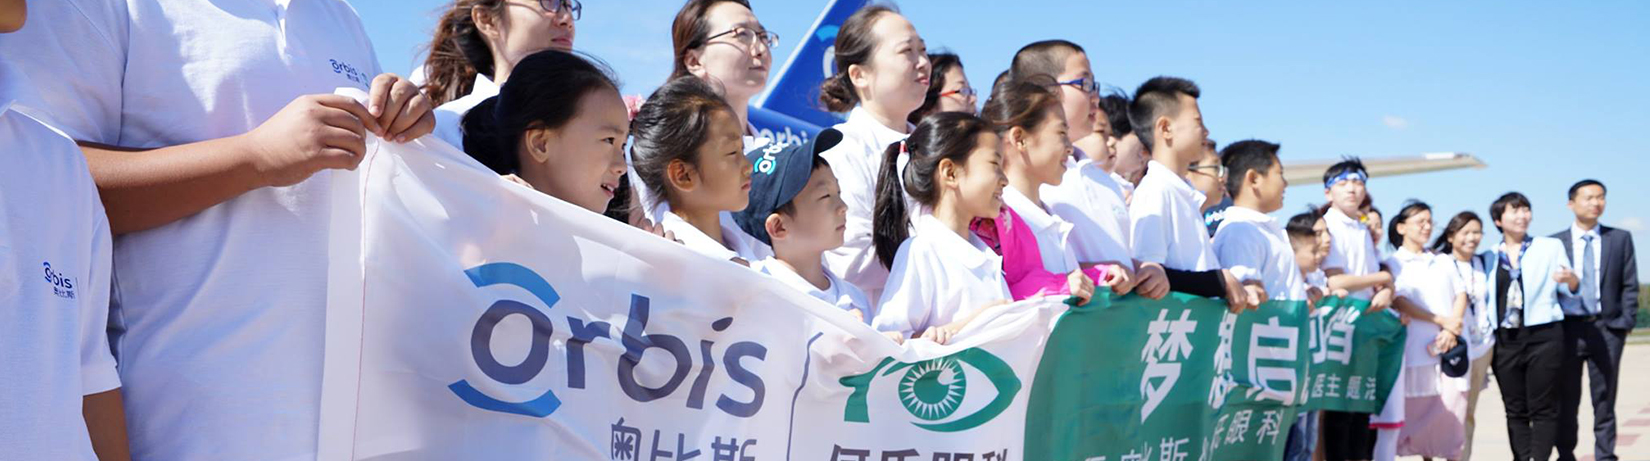 Young children holding Orbis banner at event